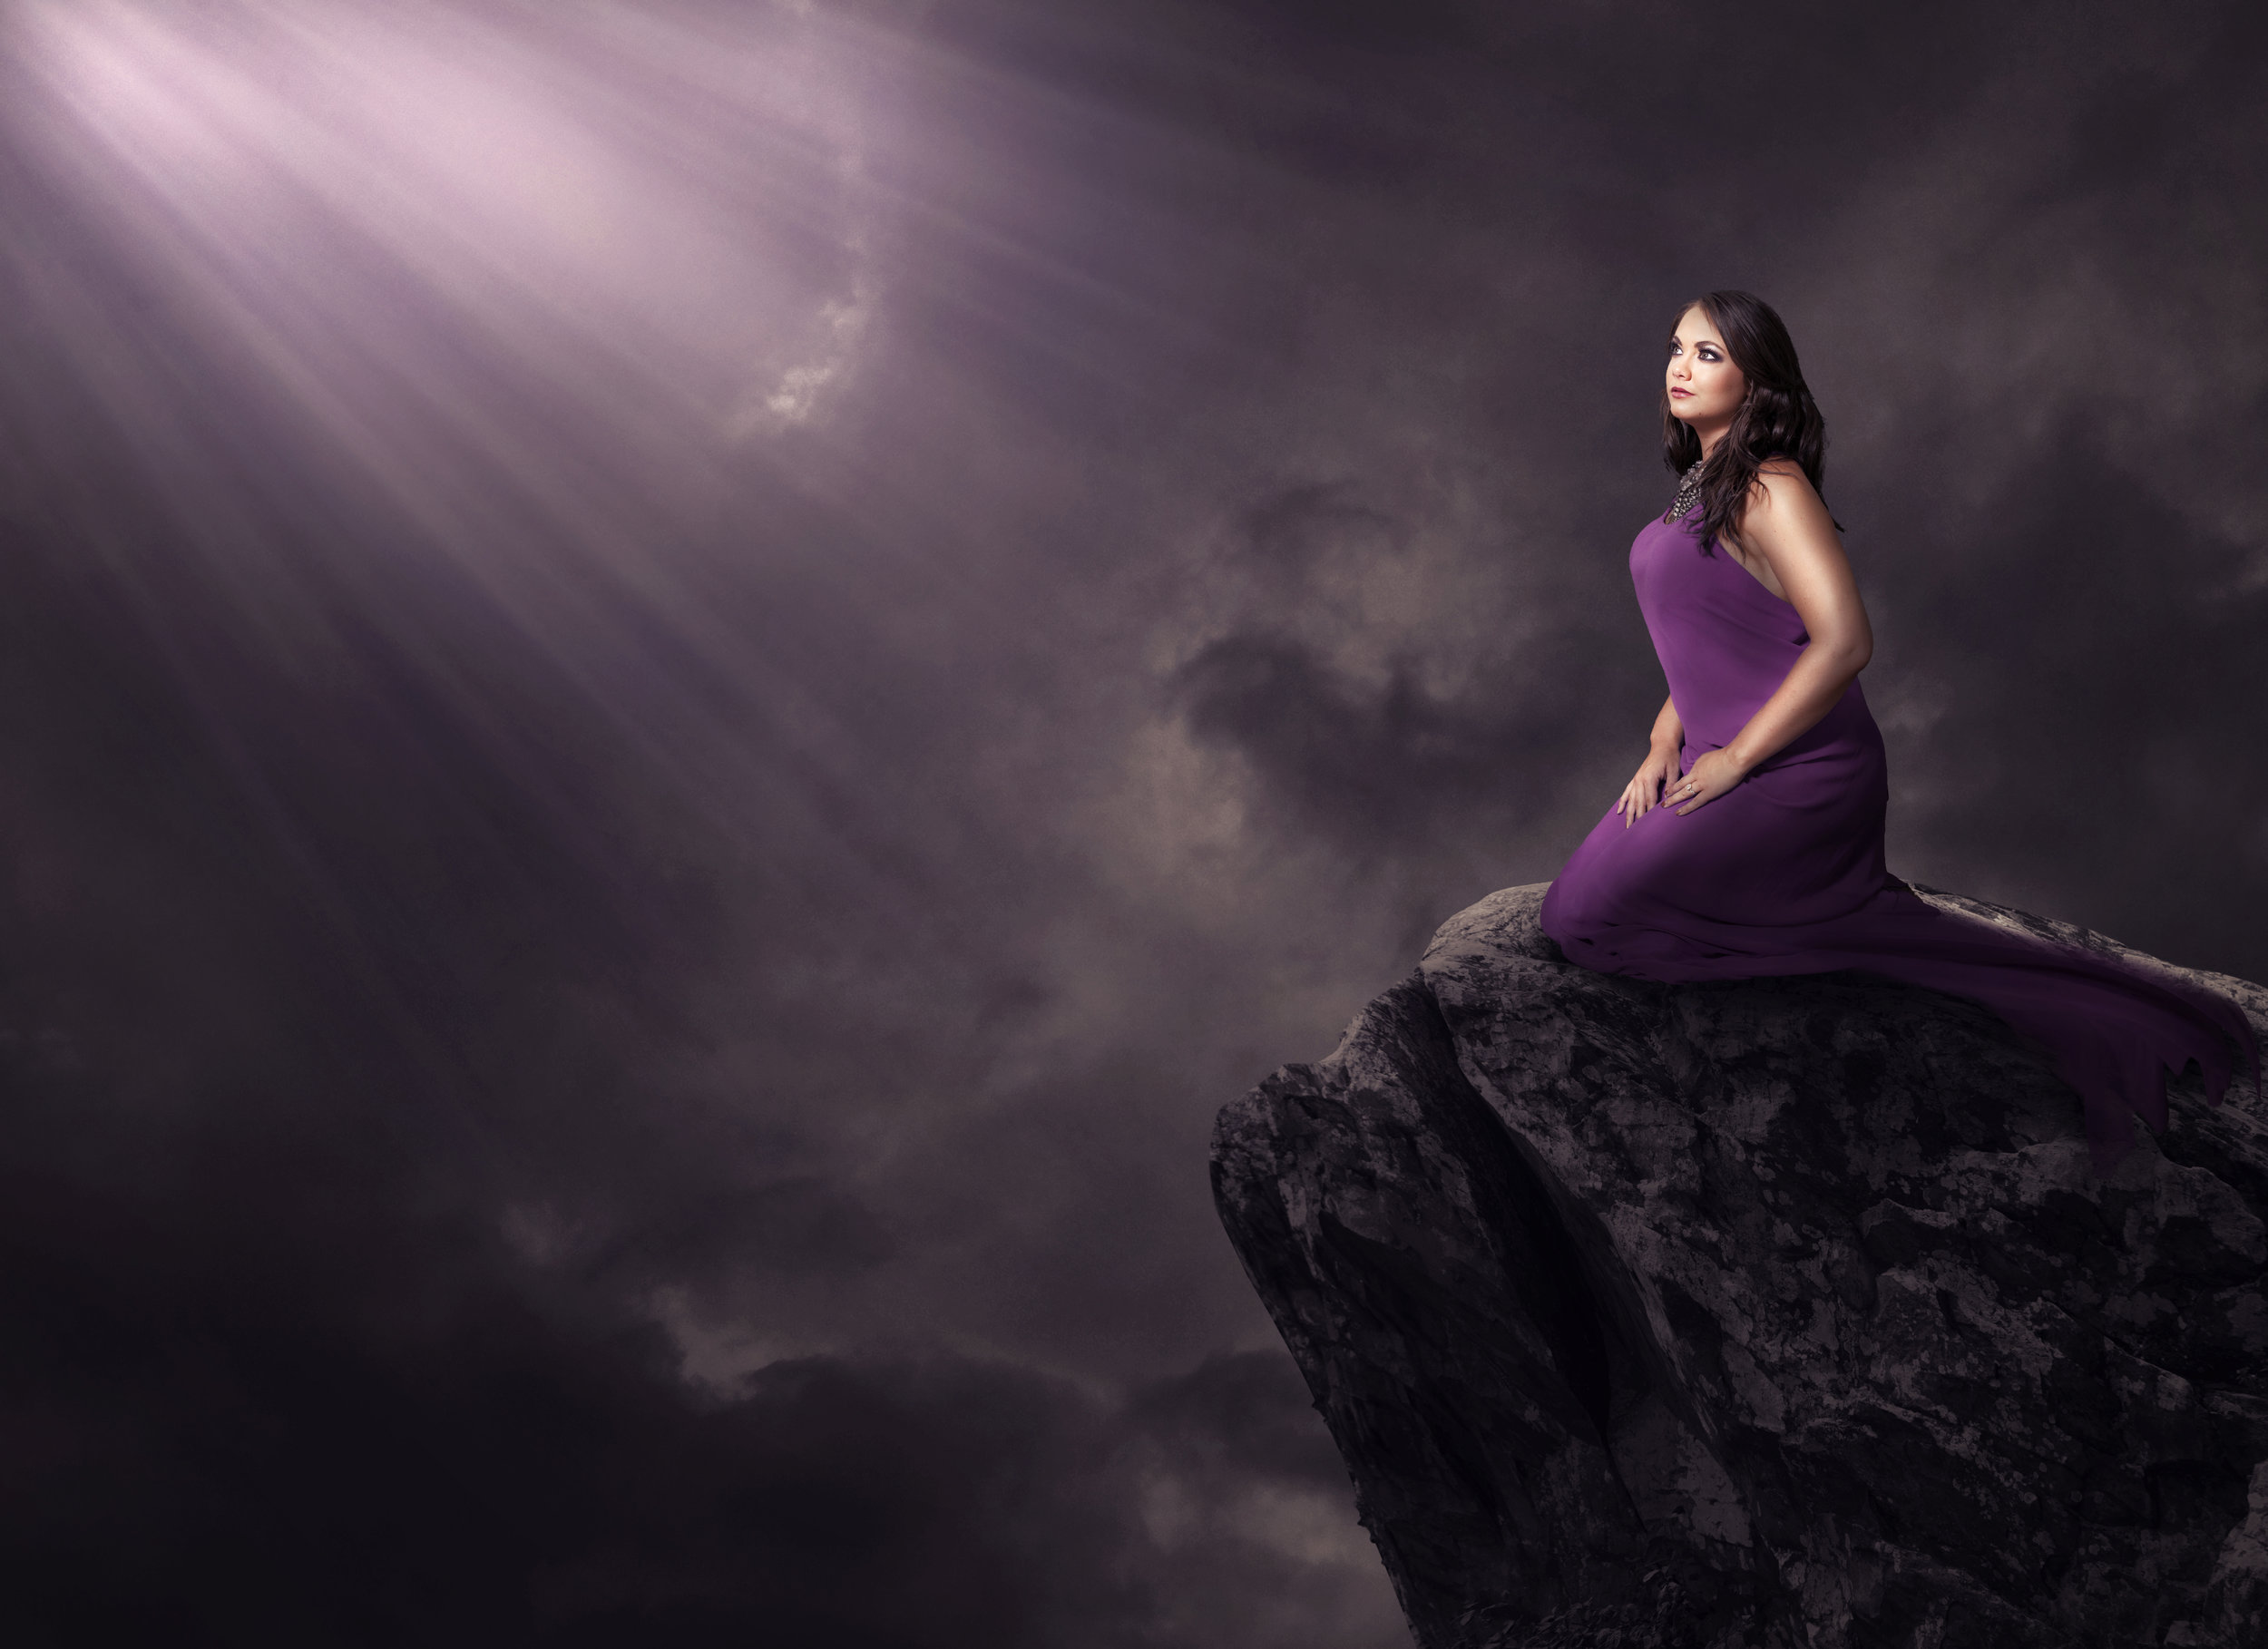 a-woman-alone-on-a-cliff-under-glowing-lights_SjoBBhKIPx.jpg